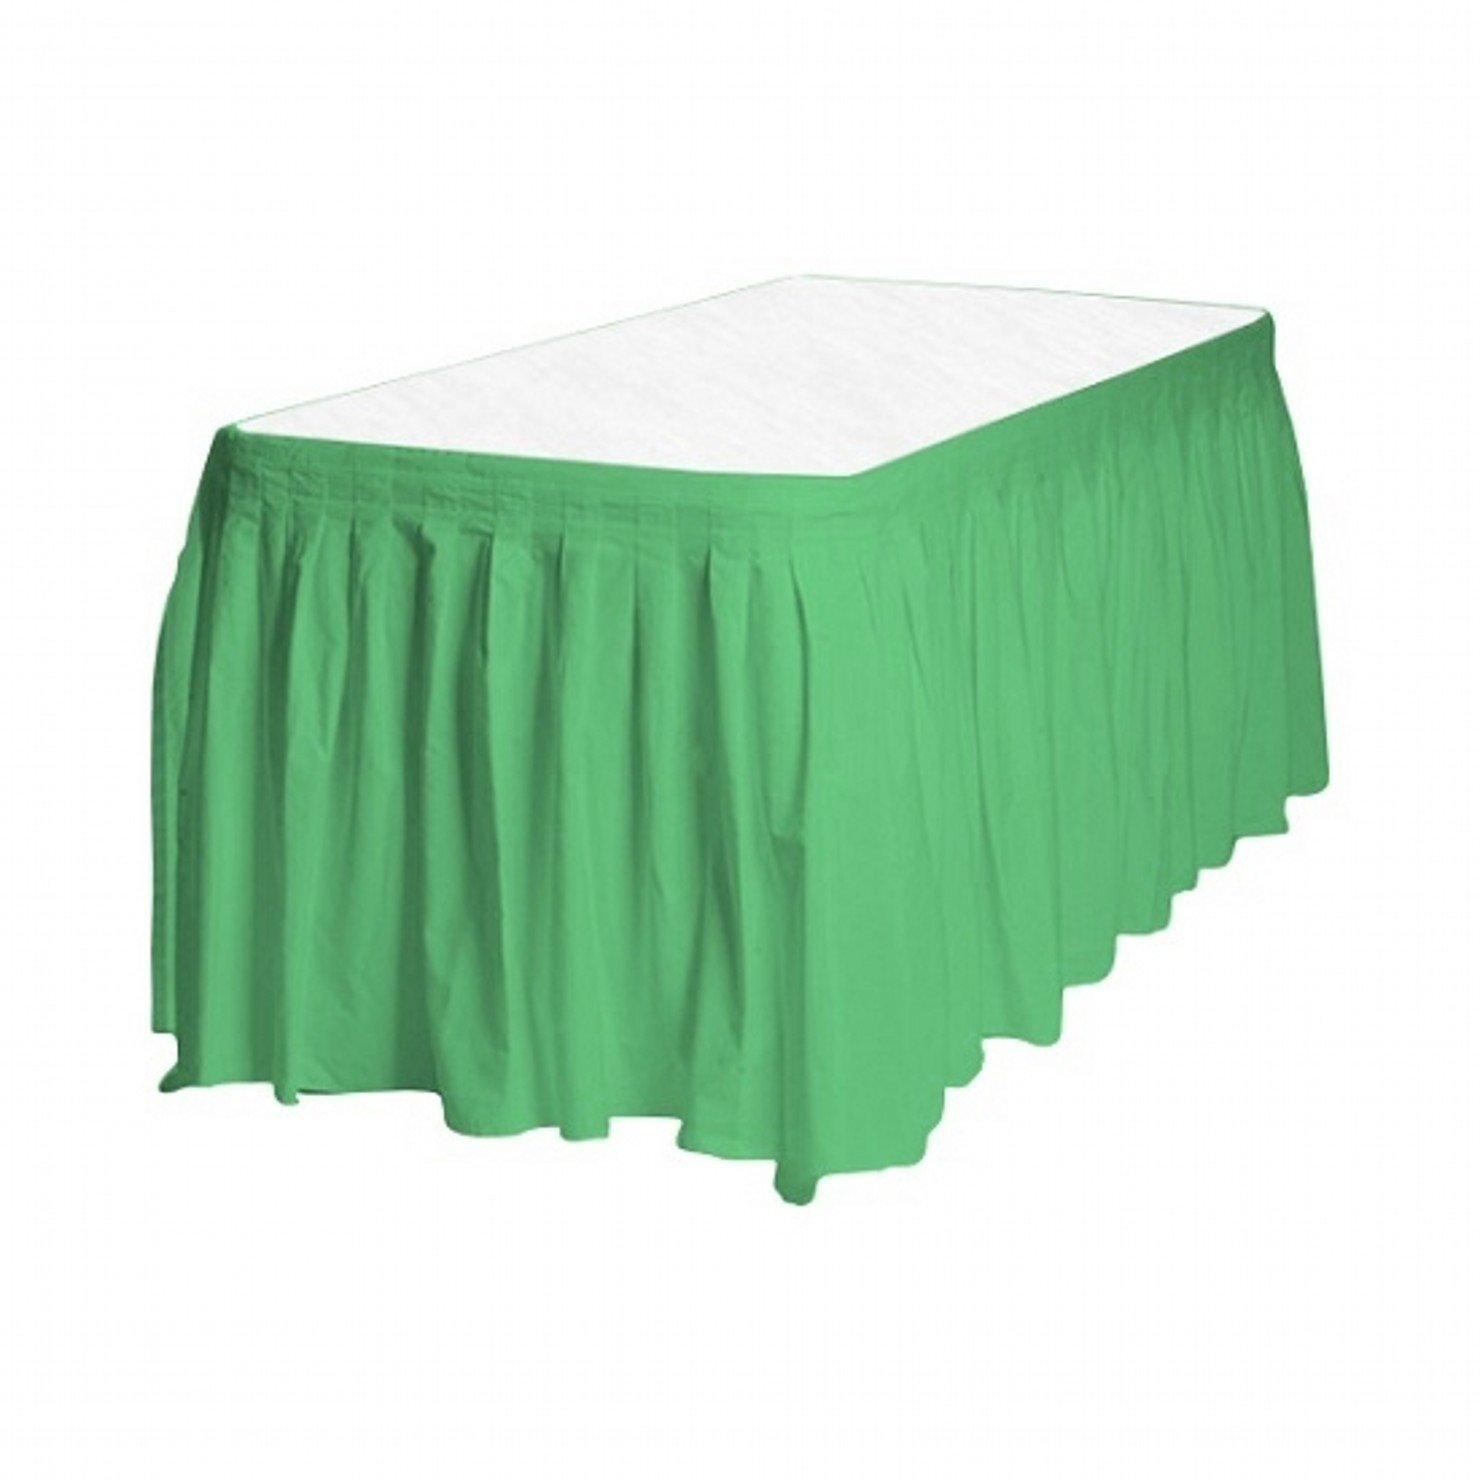 "1 Plain GREEN Plastic table skirt 13' x 29"" adjustable to 19' includes 6 clips"